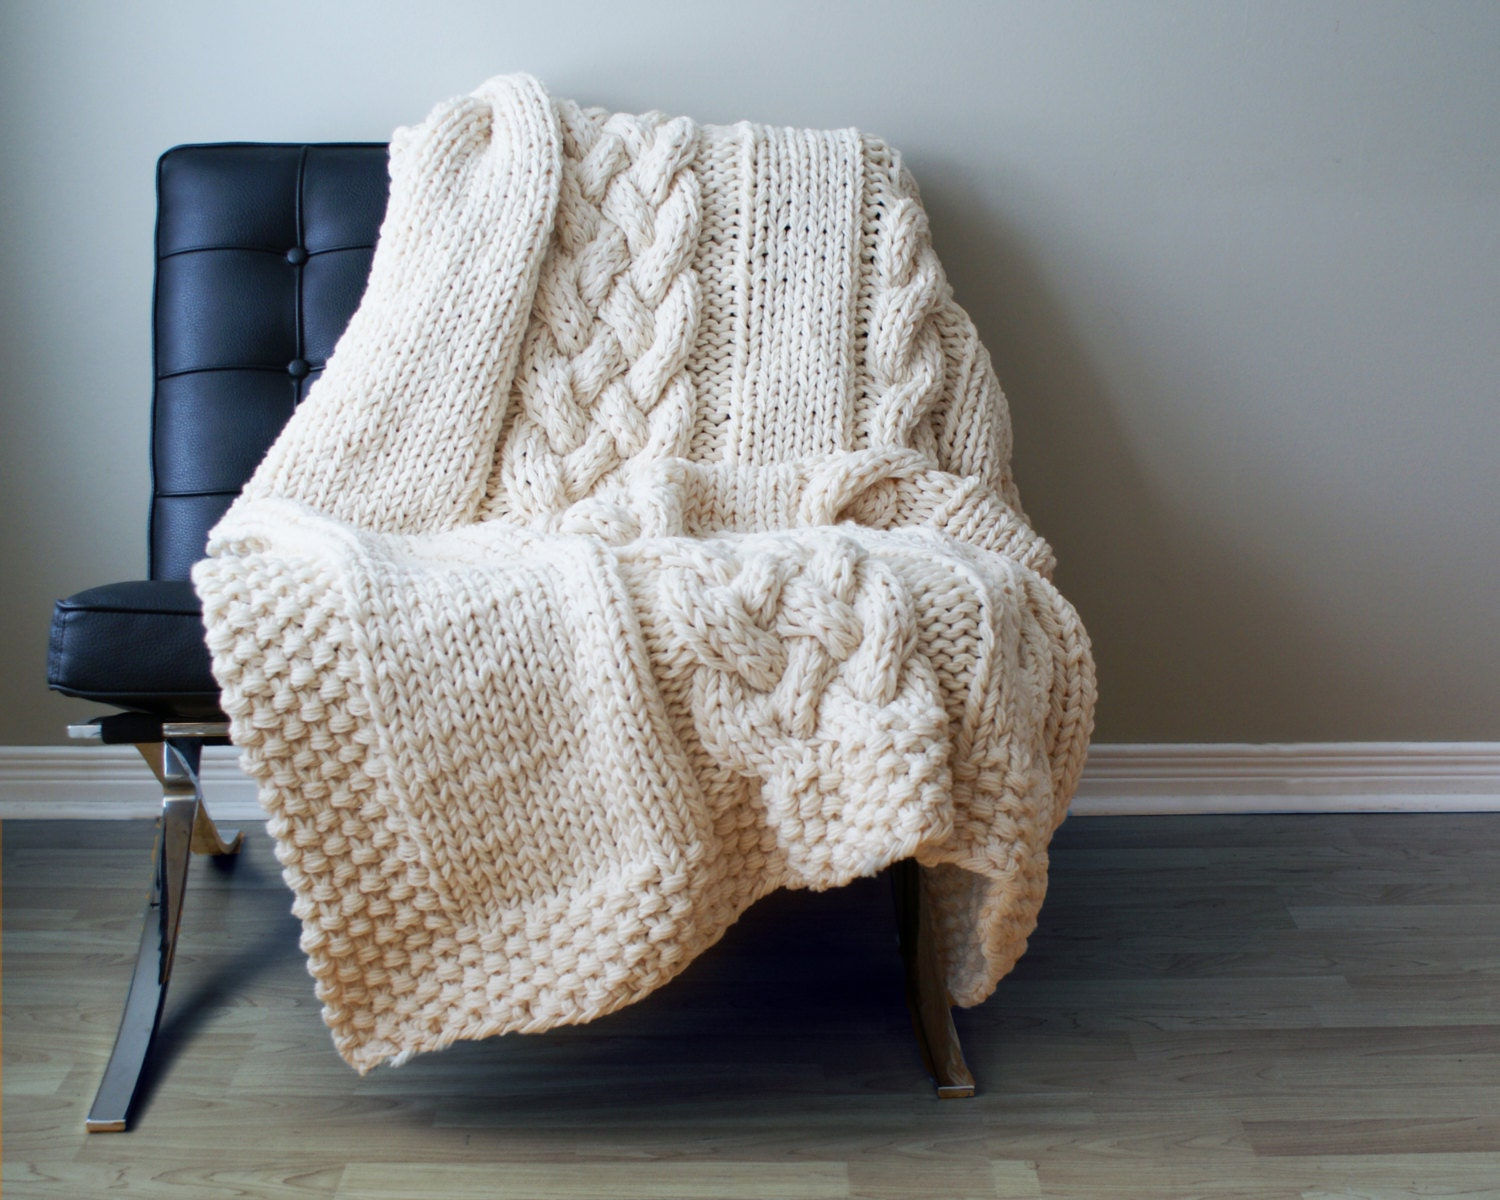 Easy Knitting Patterns For Throw Rugs : DIY Knitting PATTERN Throw Blanket / Rug Super Chunky Double